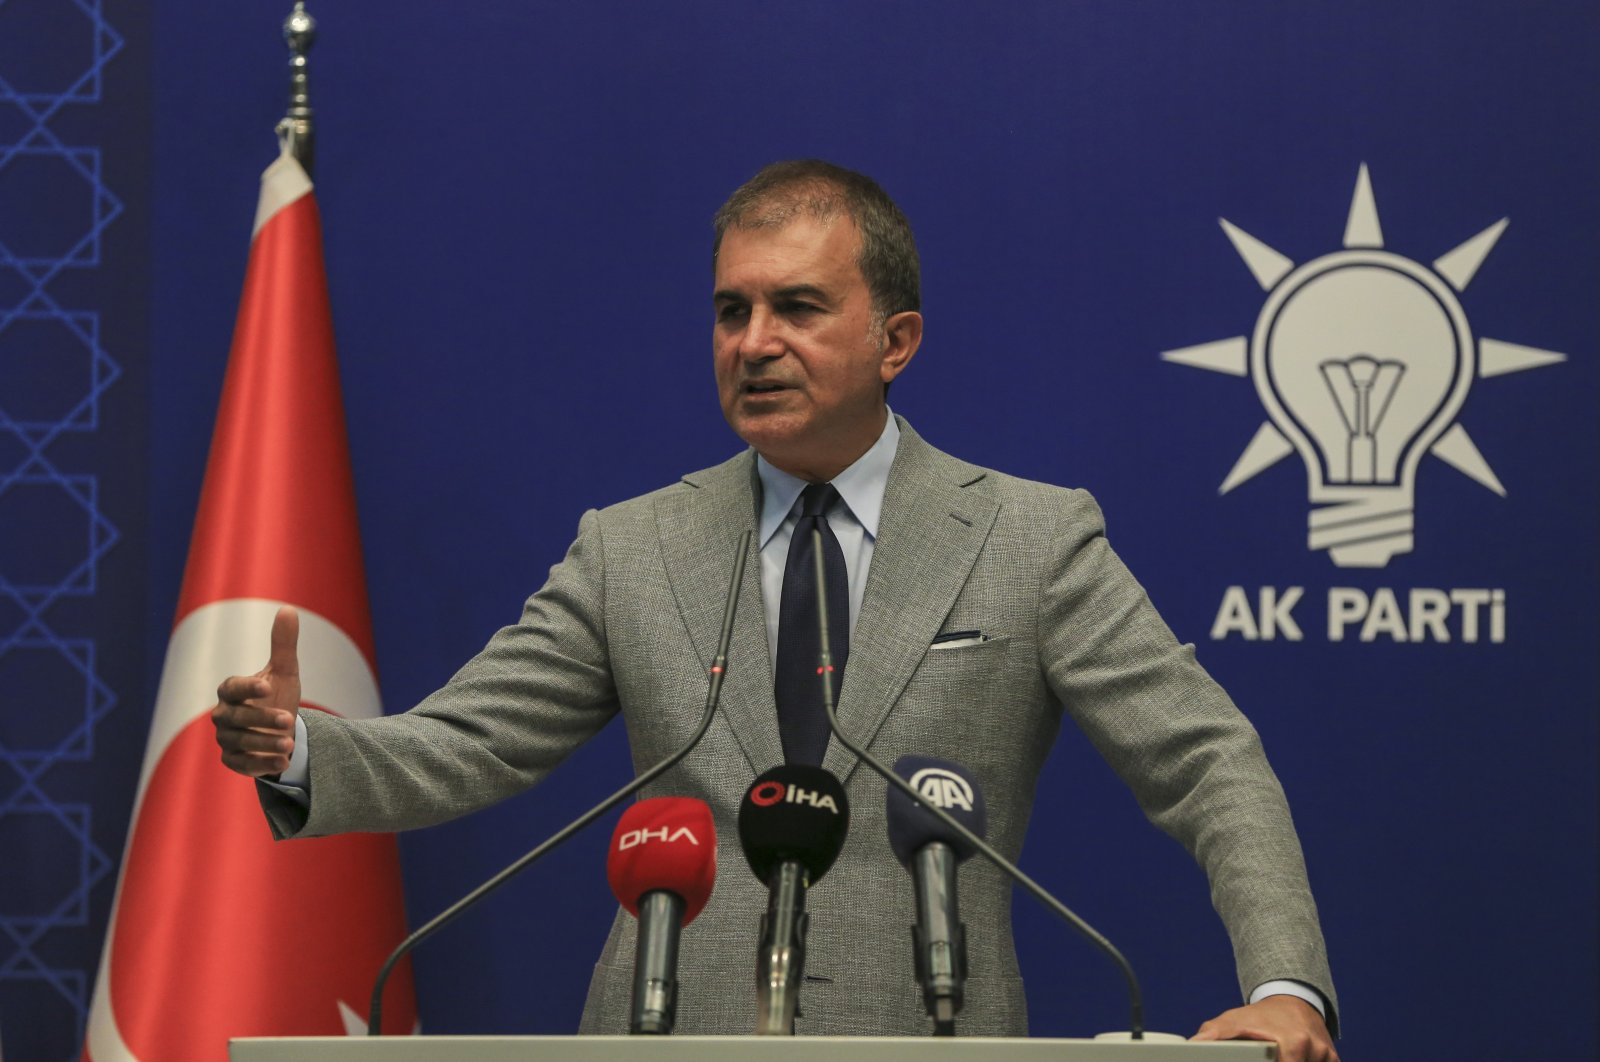 AK Party spokesman Ömer Çelik gives a statement in his party's headquarters in Ankara, Aug. 18, 2020. (AA File Photo)